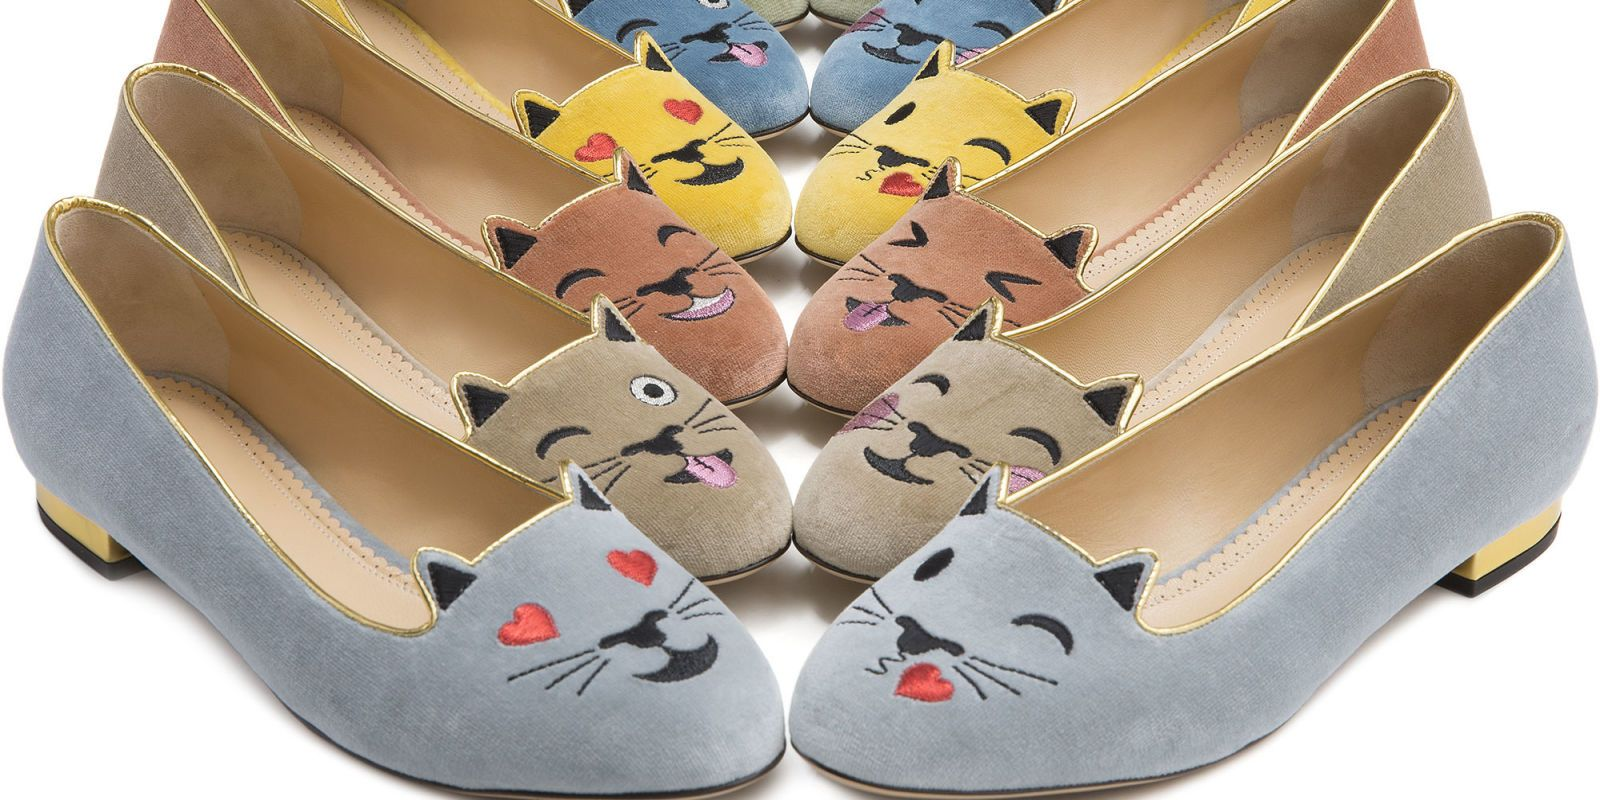 Charlotte Olympia's Classic Kitty Flats Are Also Emoji-Obsessed http://ift.tt/2dD1ADe #ELLE #Fashion